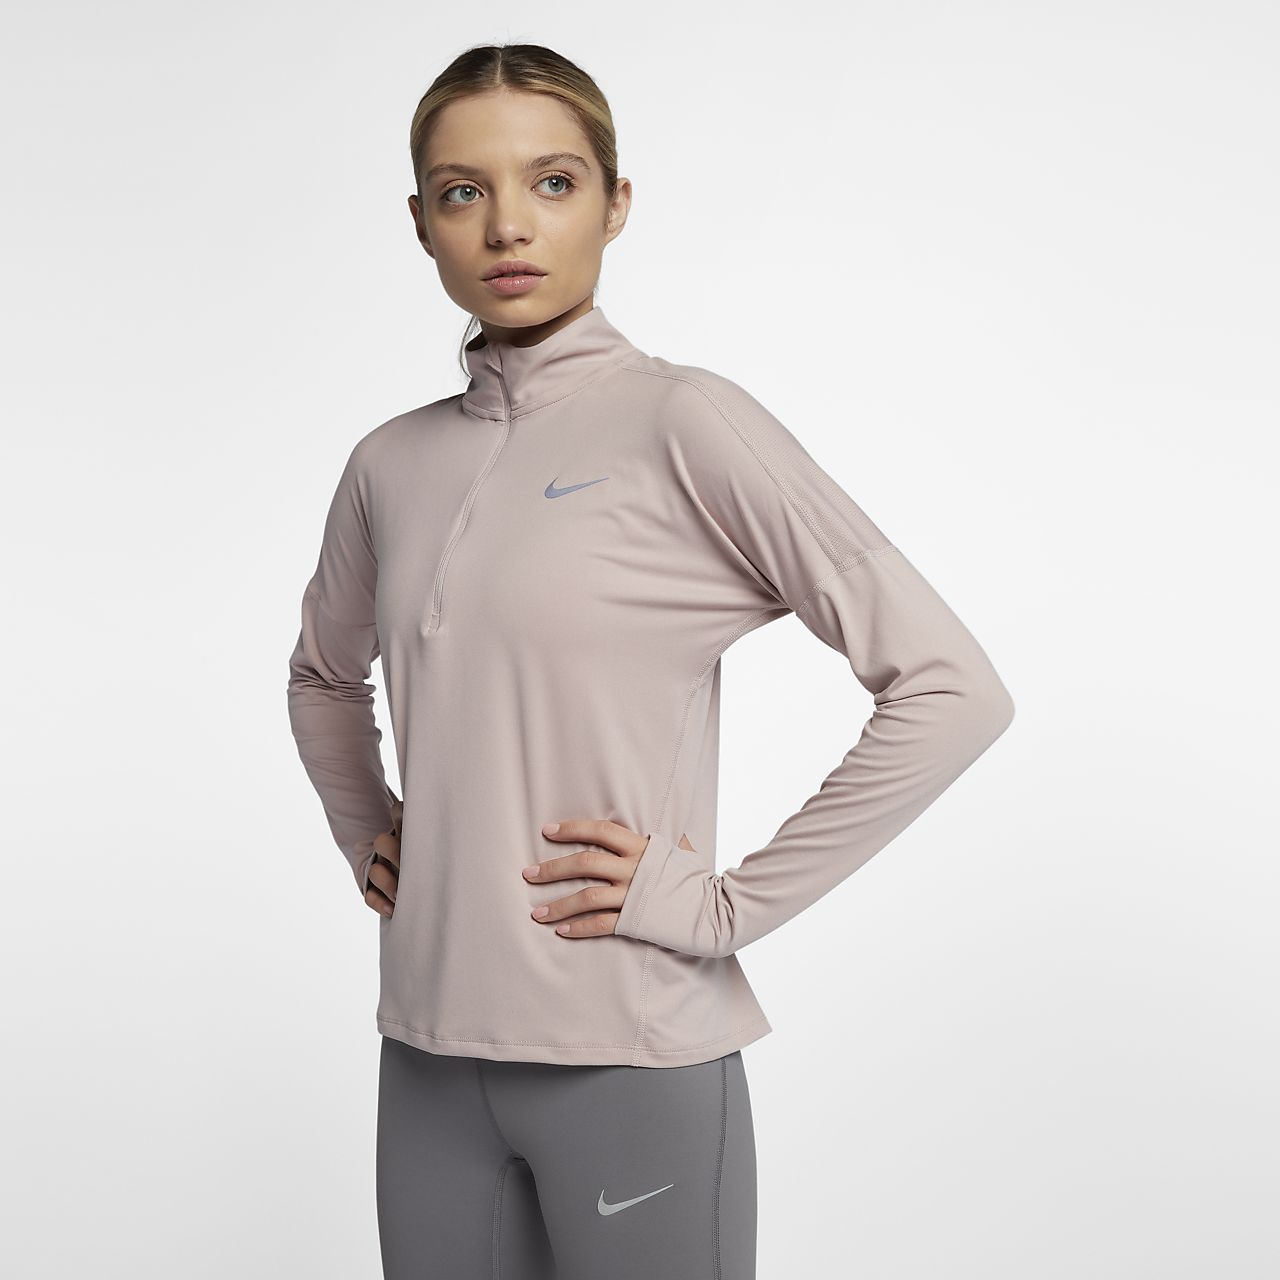 Nike Dri-FIT Women's Long-Sleeve Running Half-Zip Top